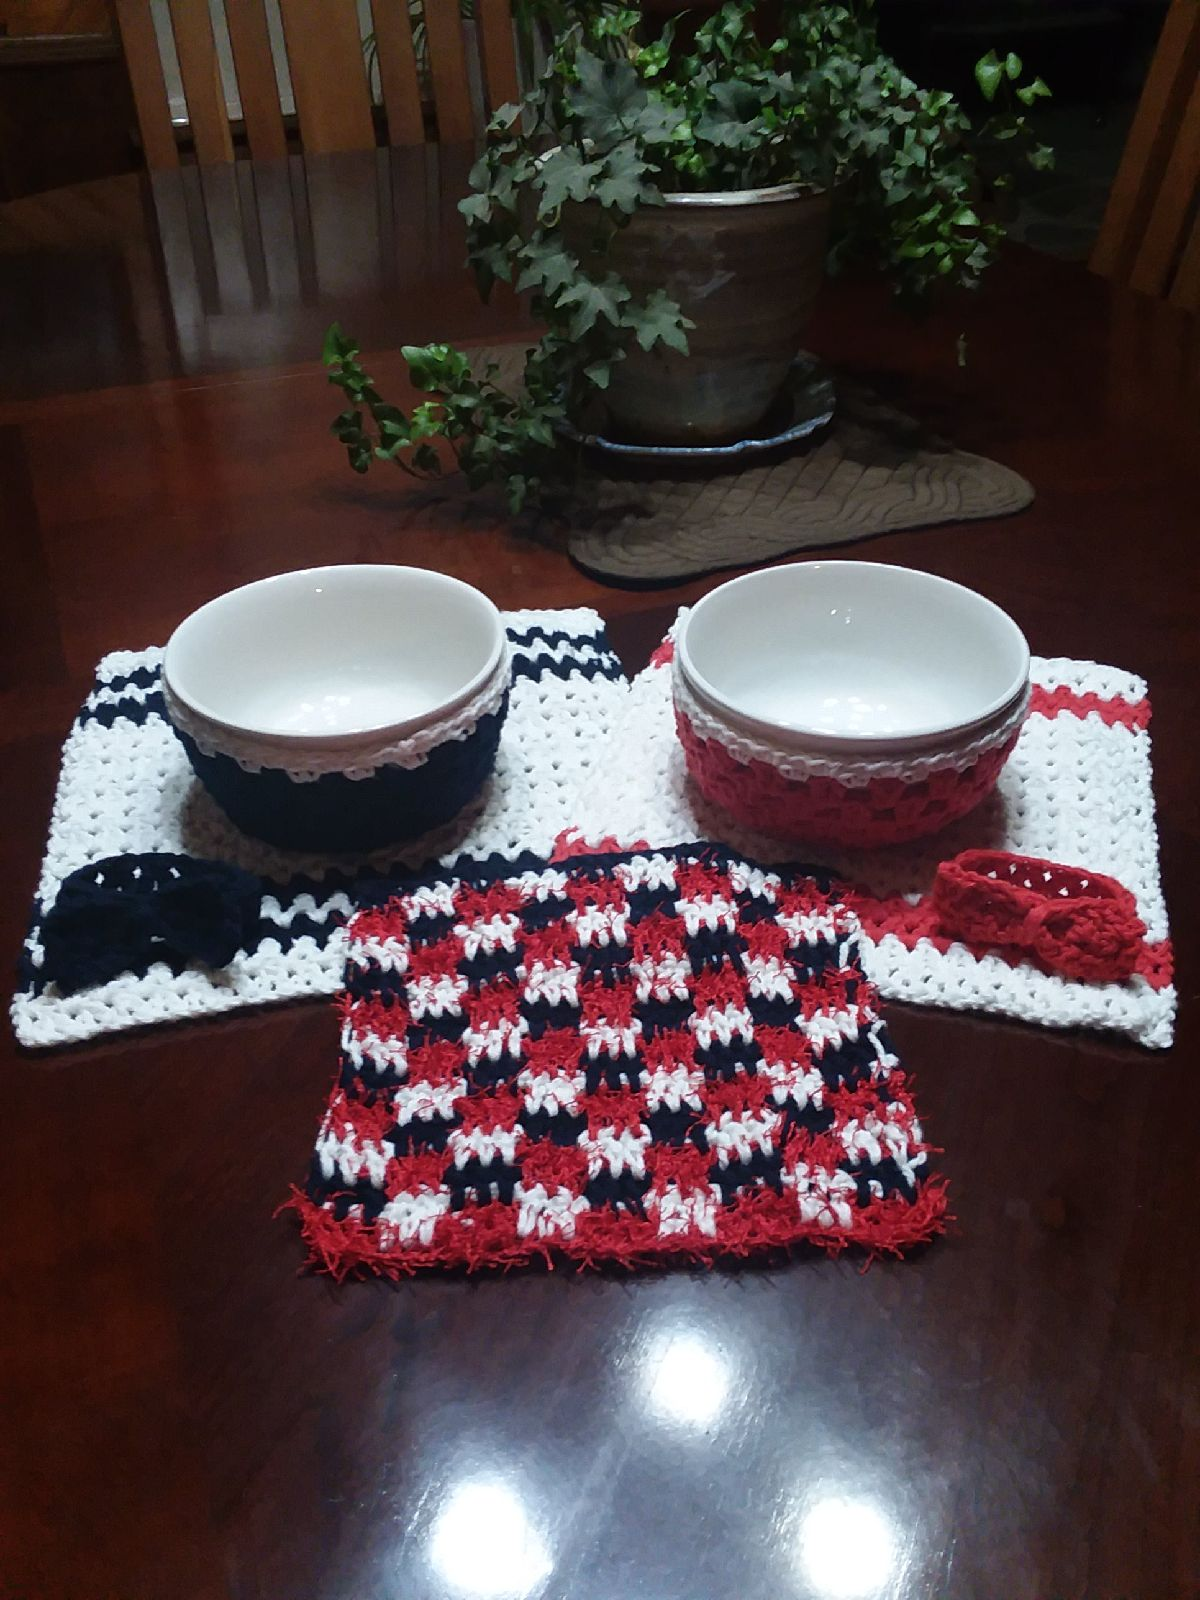 Soup bowls with cozies and napkins